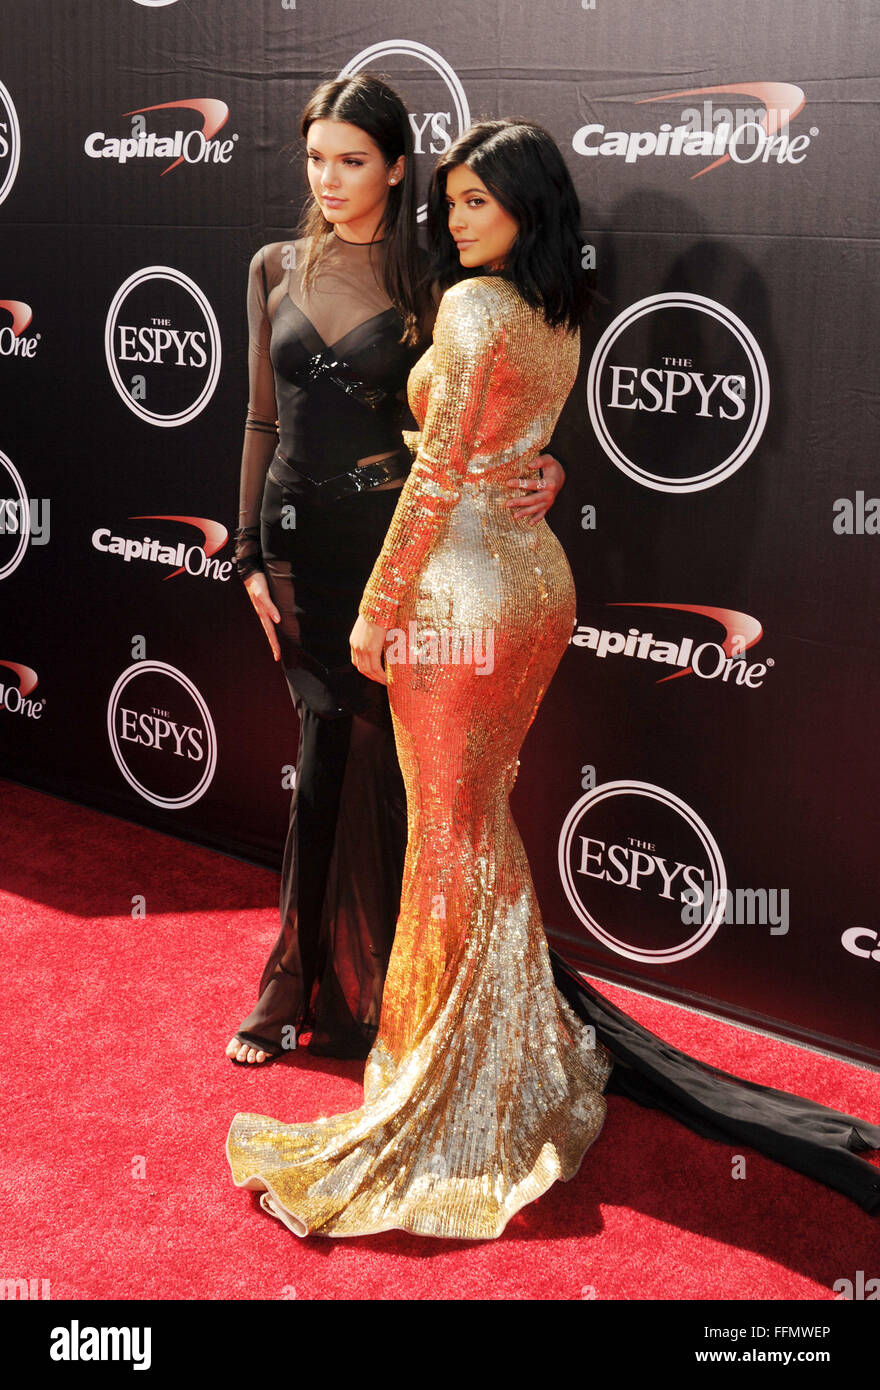 TV personalities Kendall Jenner (L) and Kylie Jenner arrive at the The 2015 ESPYS at Microsoft Theater on July 15, - Stock Image